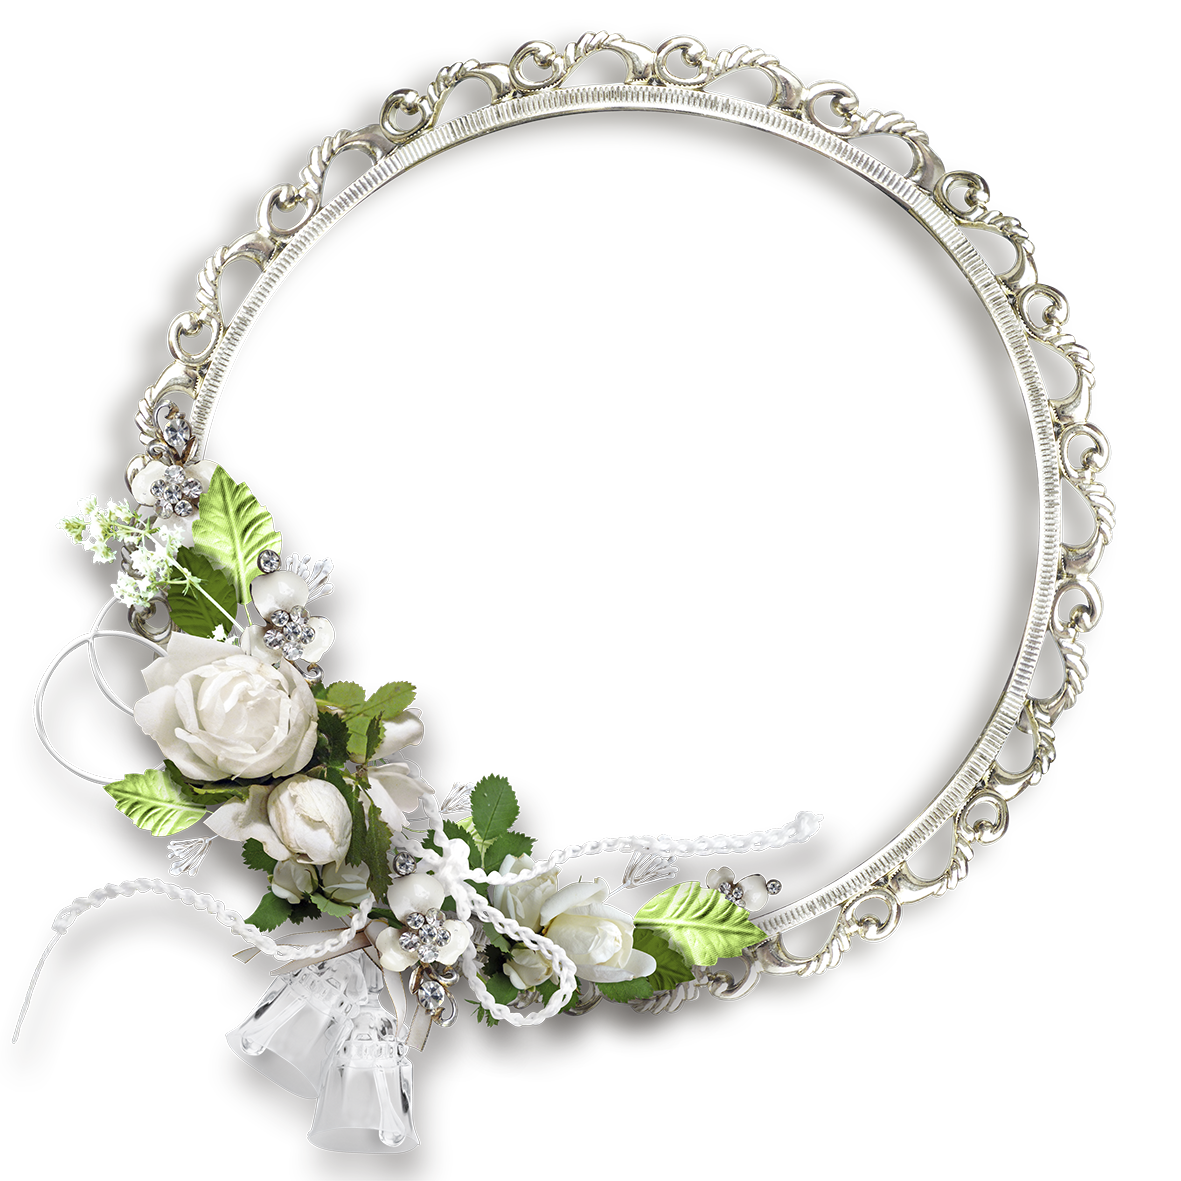 White Round Flowers Transparent Frame Weddings Pinterest